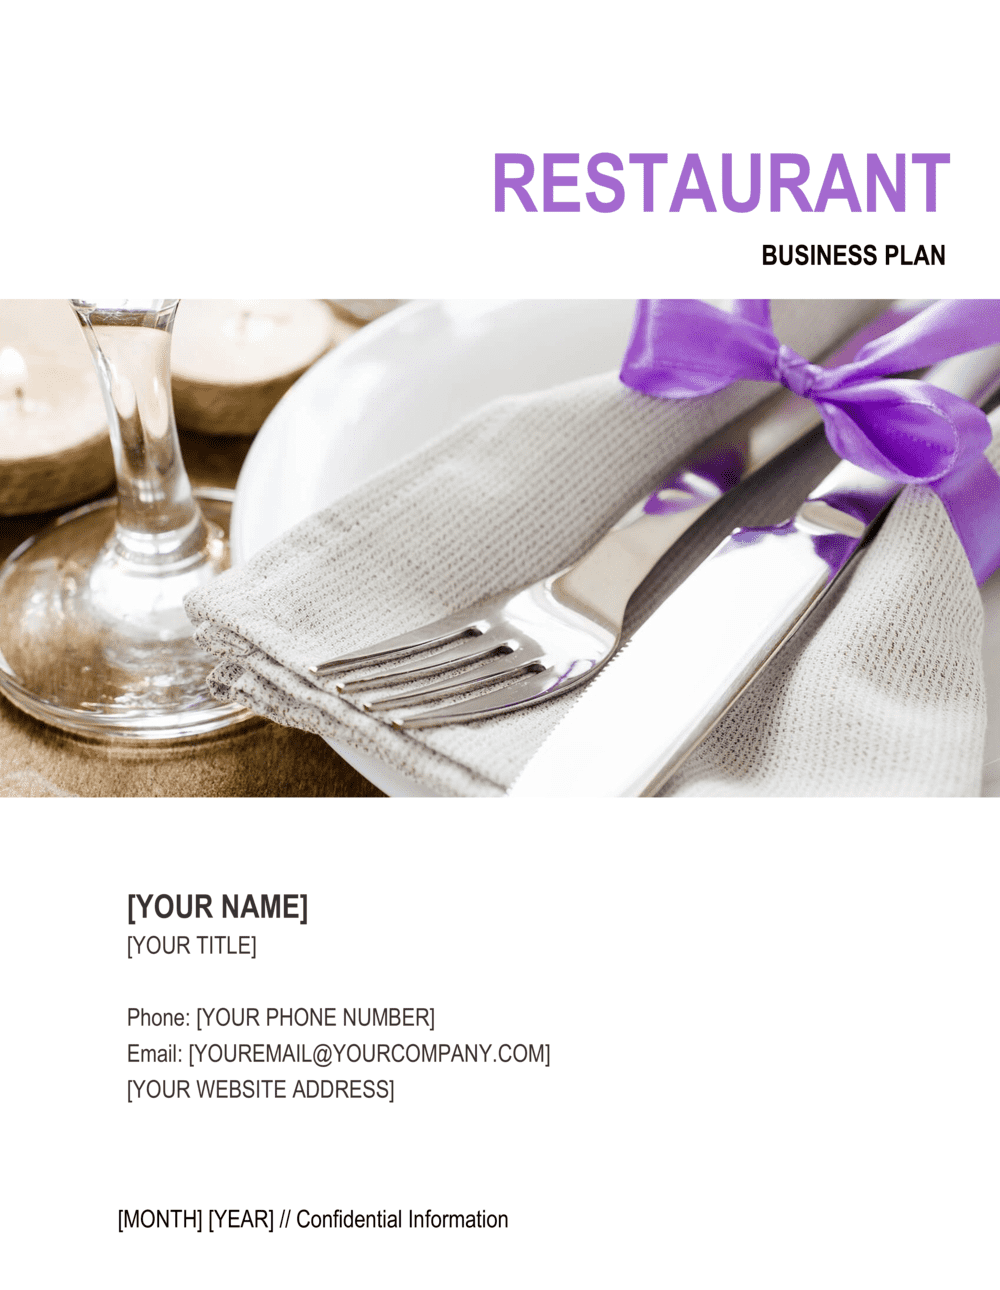 Business-in-a-Box's Restaurant Business Plan 5 Template